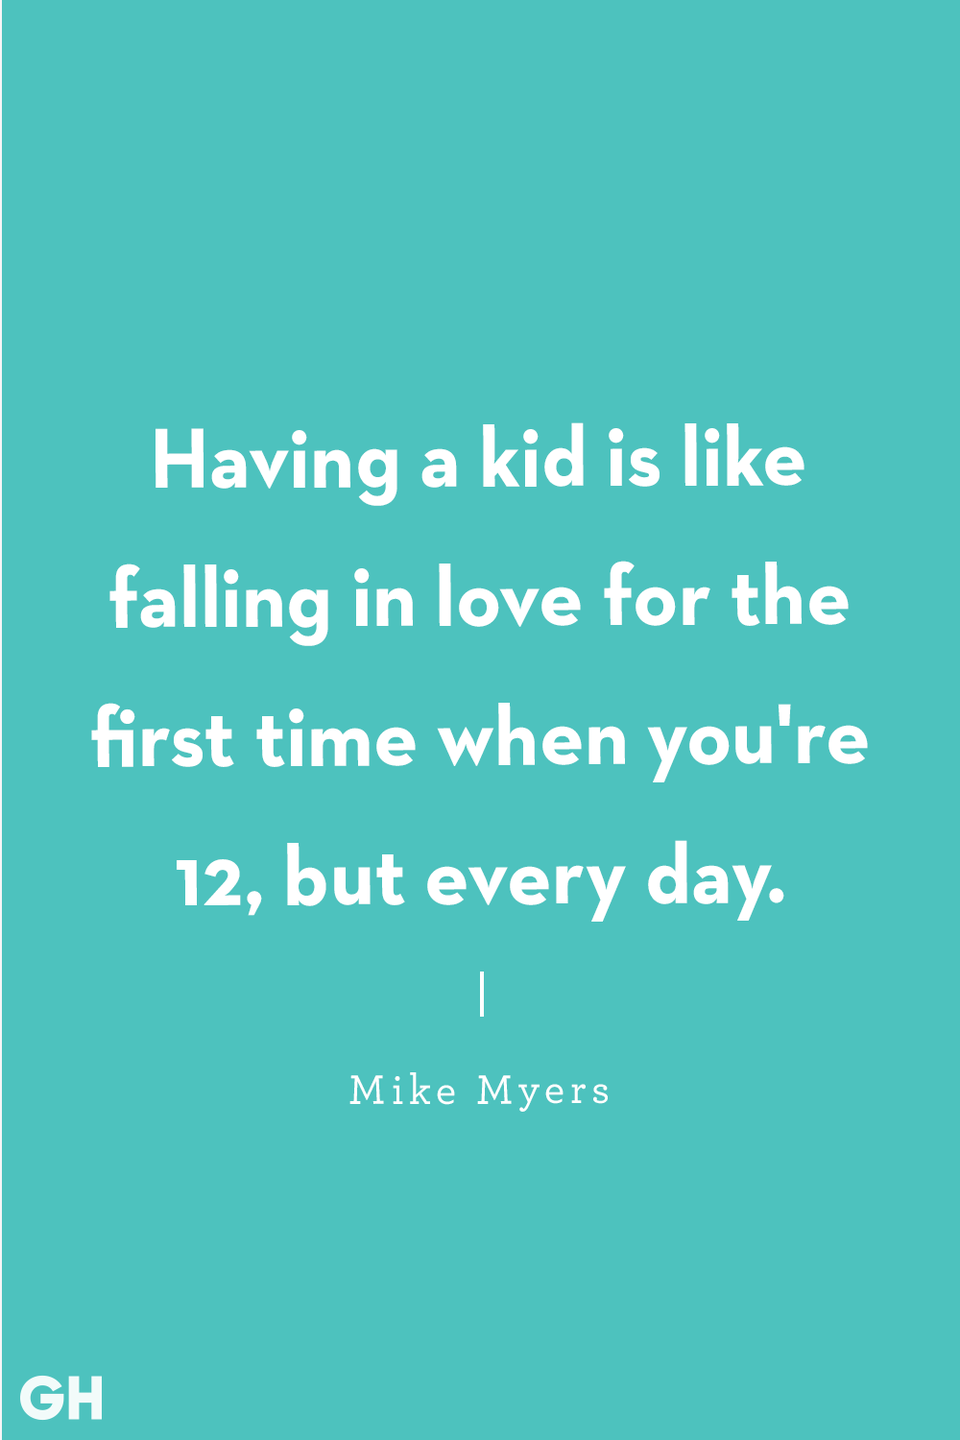 <p>Having a kid is like falling in love for the first time when you're 12, but every day.</p>